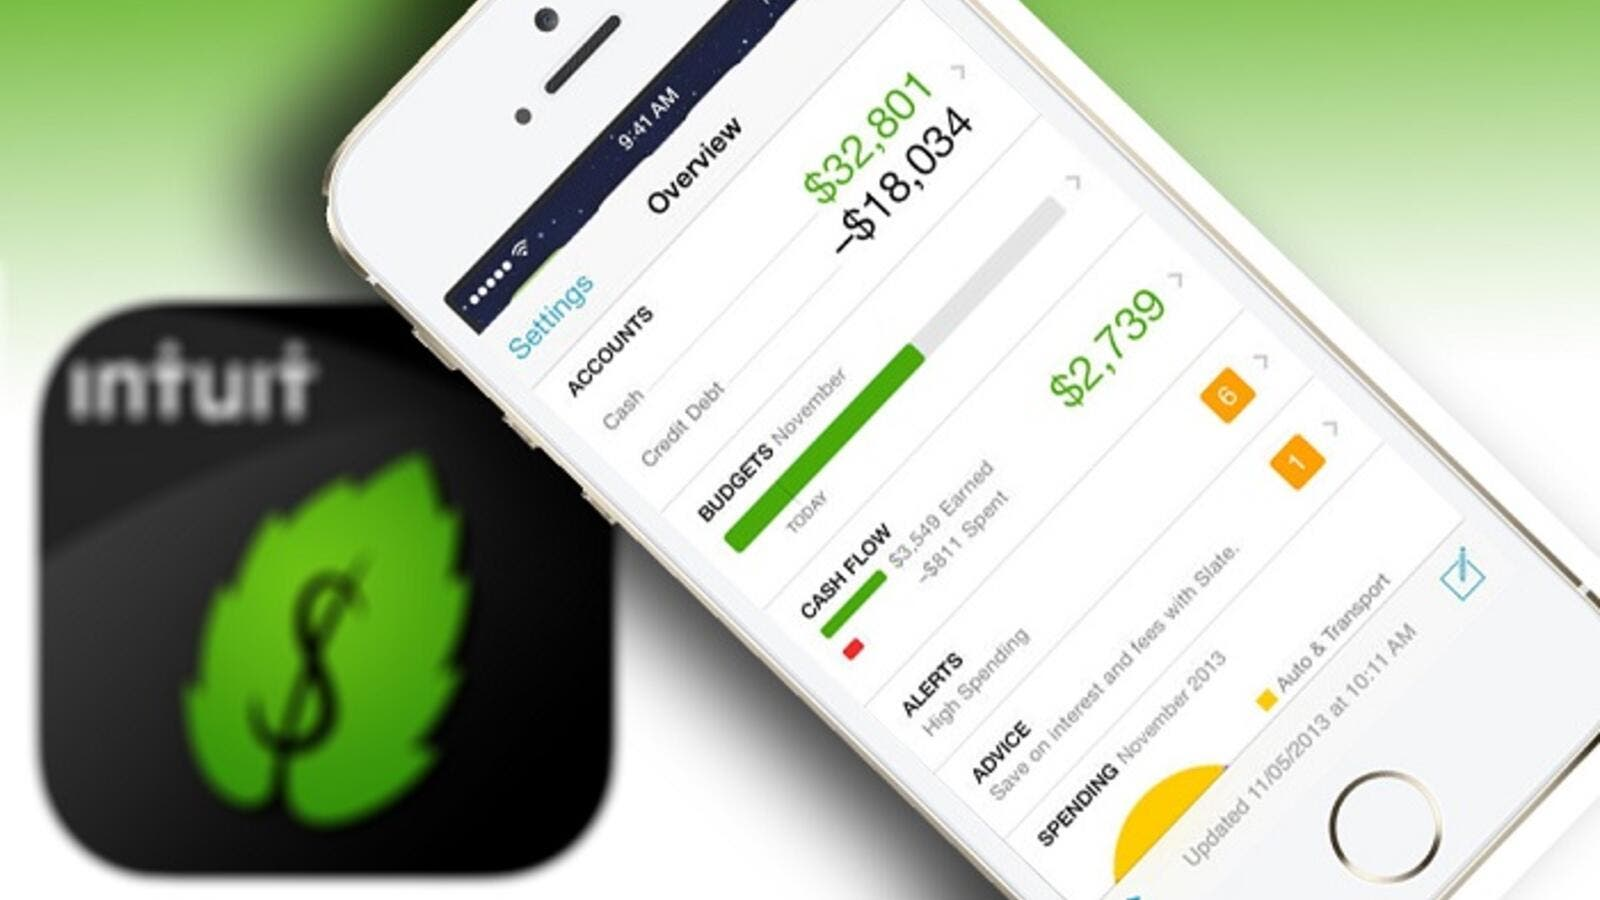 5 life-changing apps that will help you save money, stick to